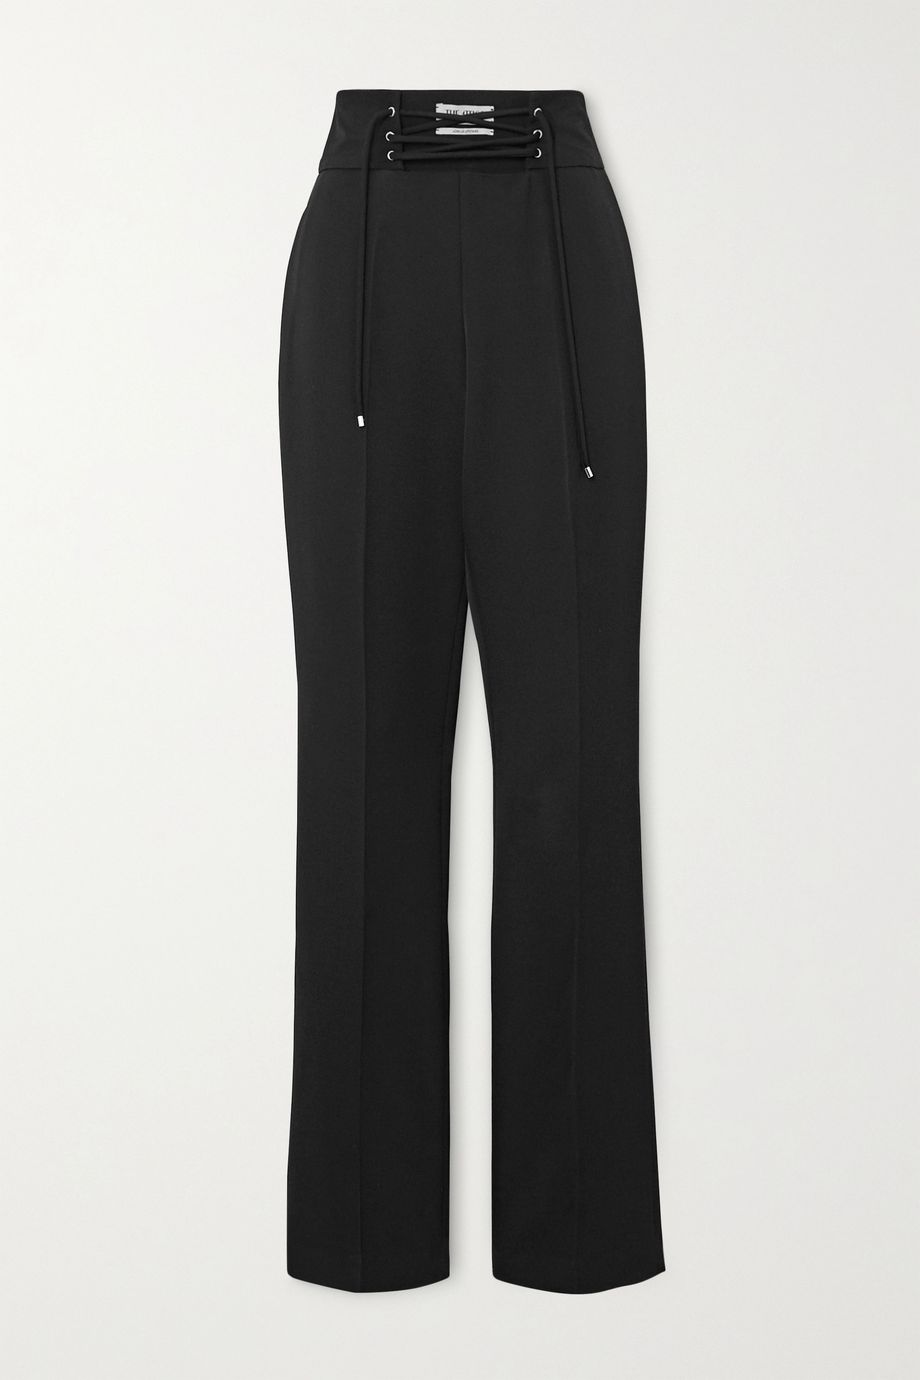 The Attico Lace-up wool-gabardine straight-leg pants